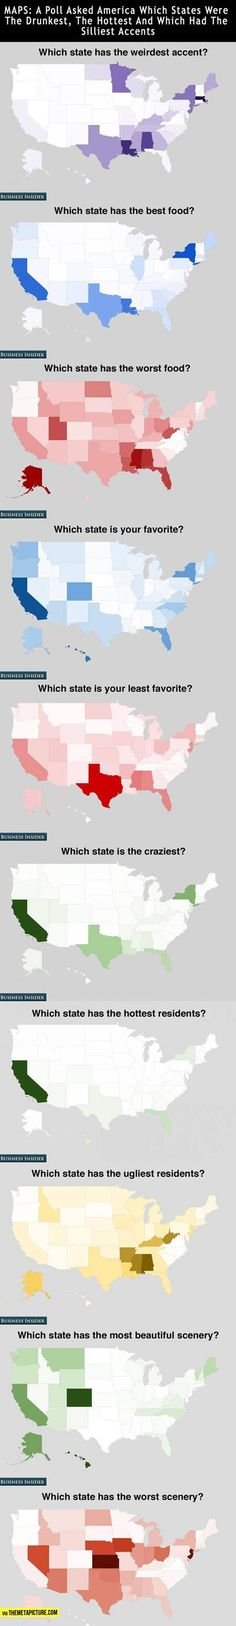 How Americans feel about the states... Seriously? Some of these states you'd actually have to live in in order to judge it the way these people were